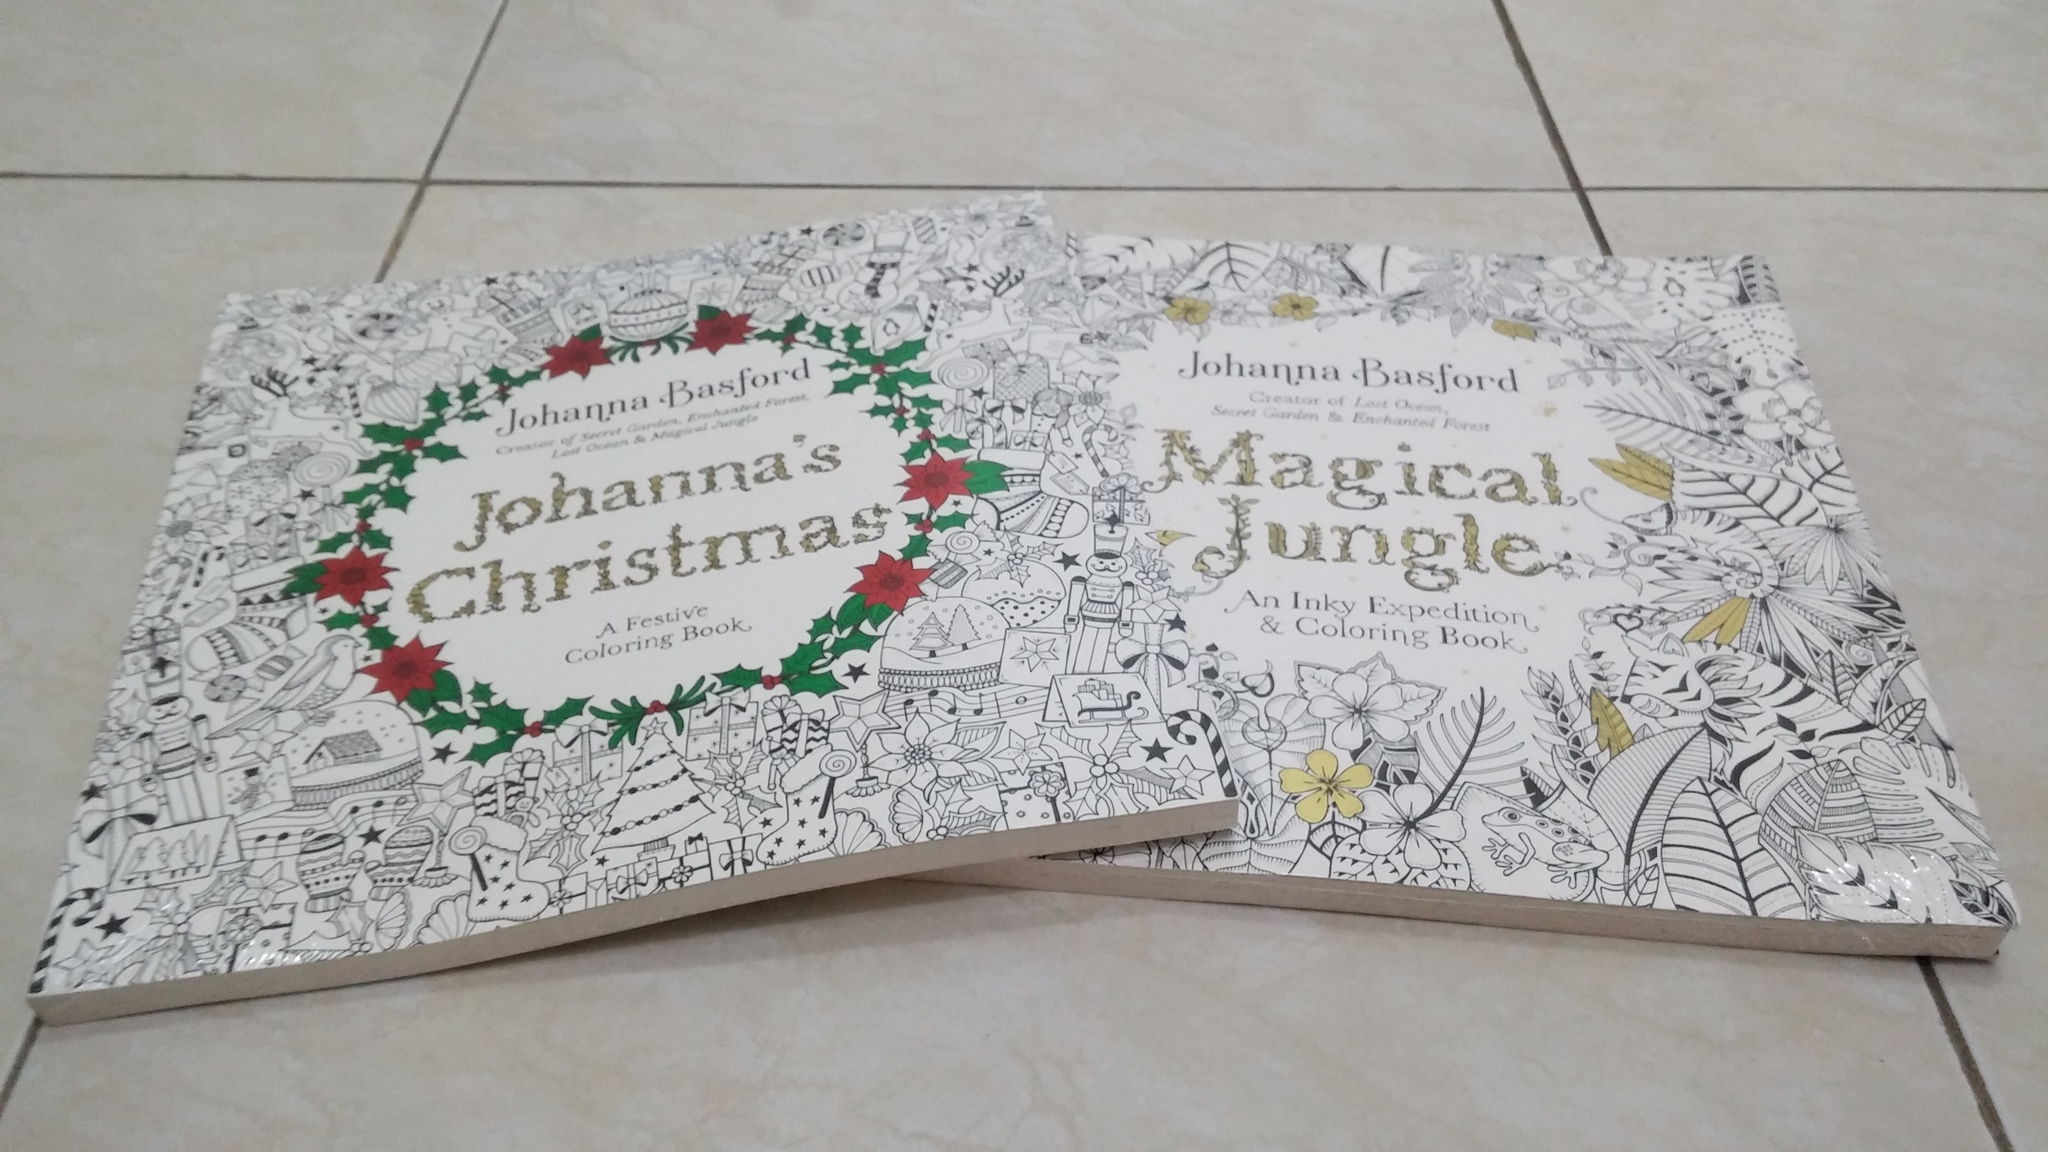 Jual Magical Jungle Coloring Book Or Johanna S Christmas